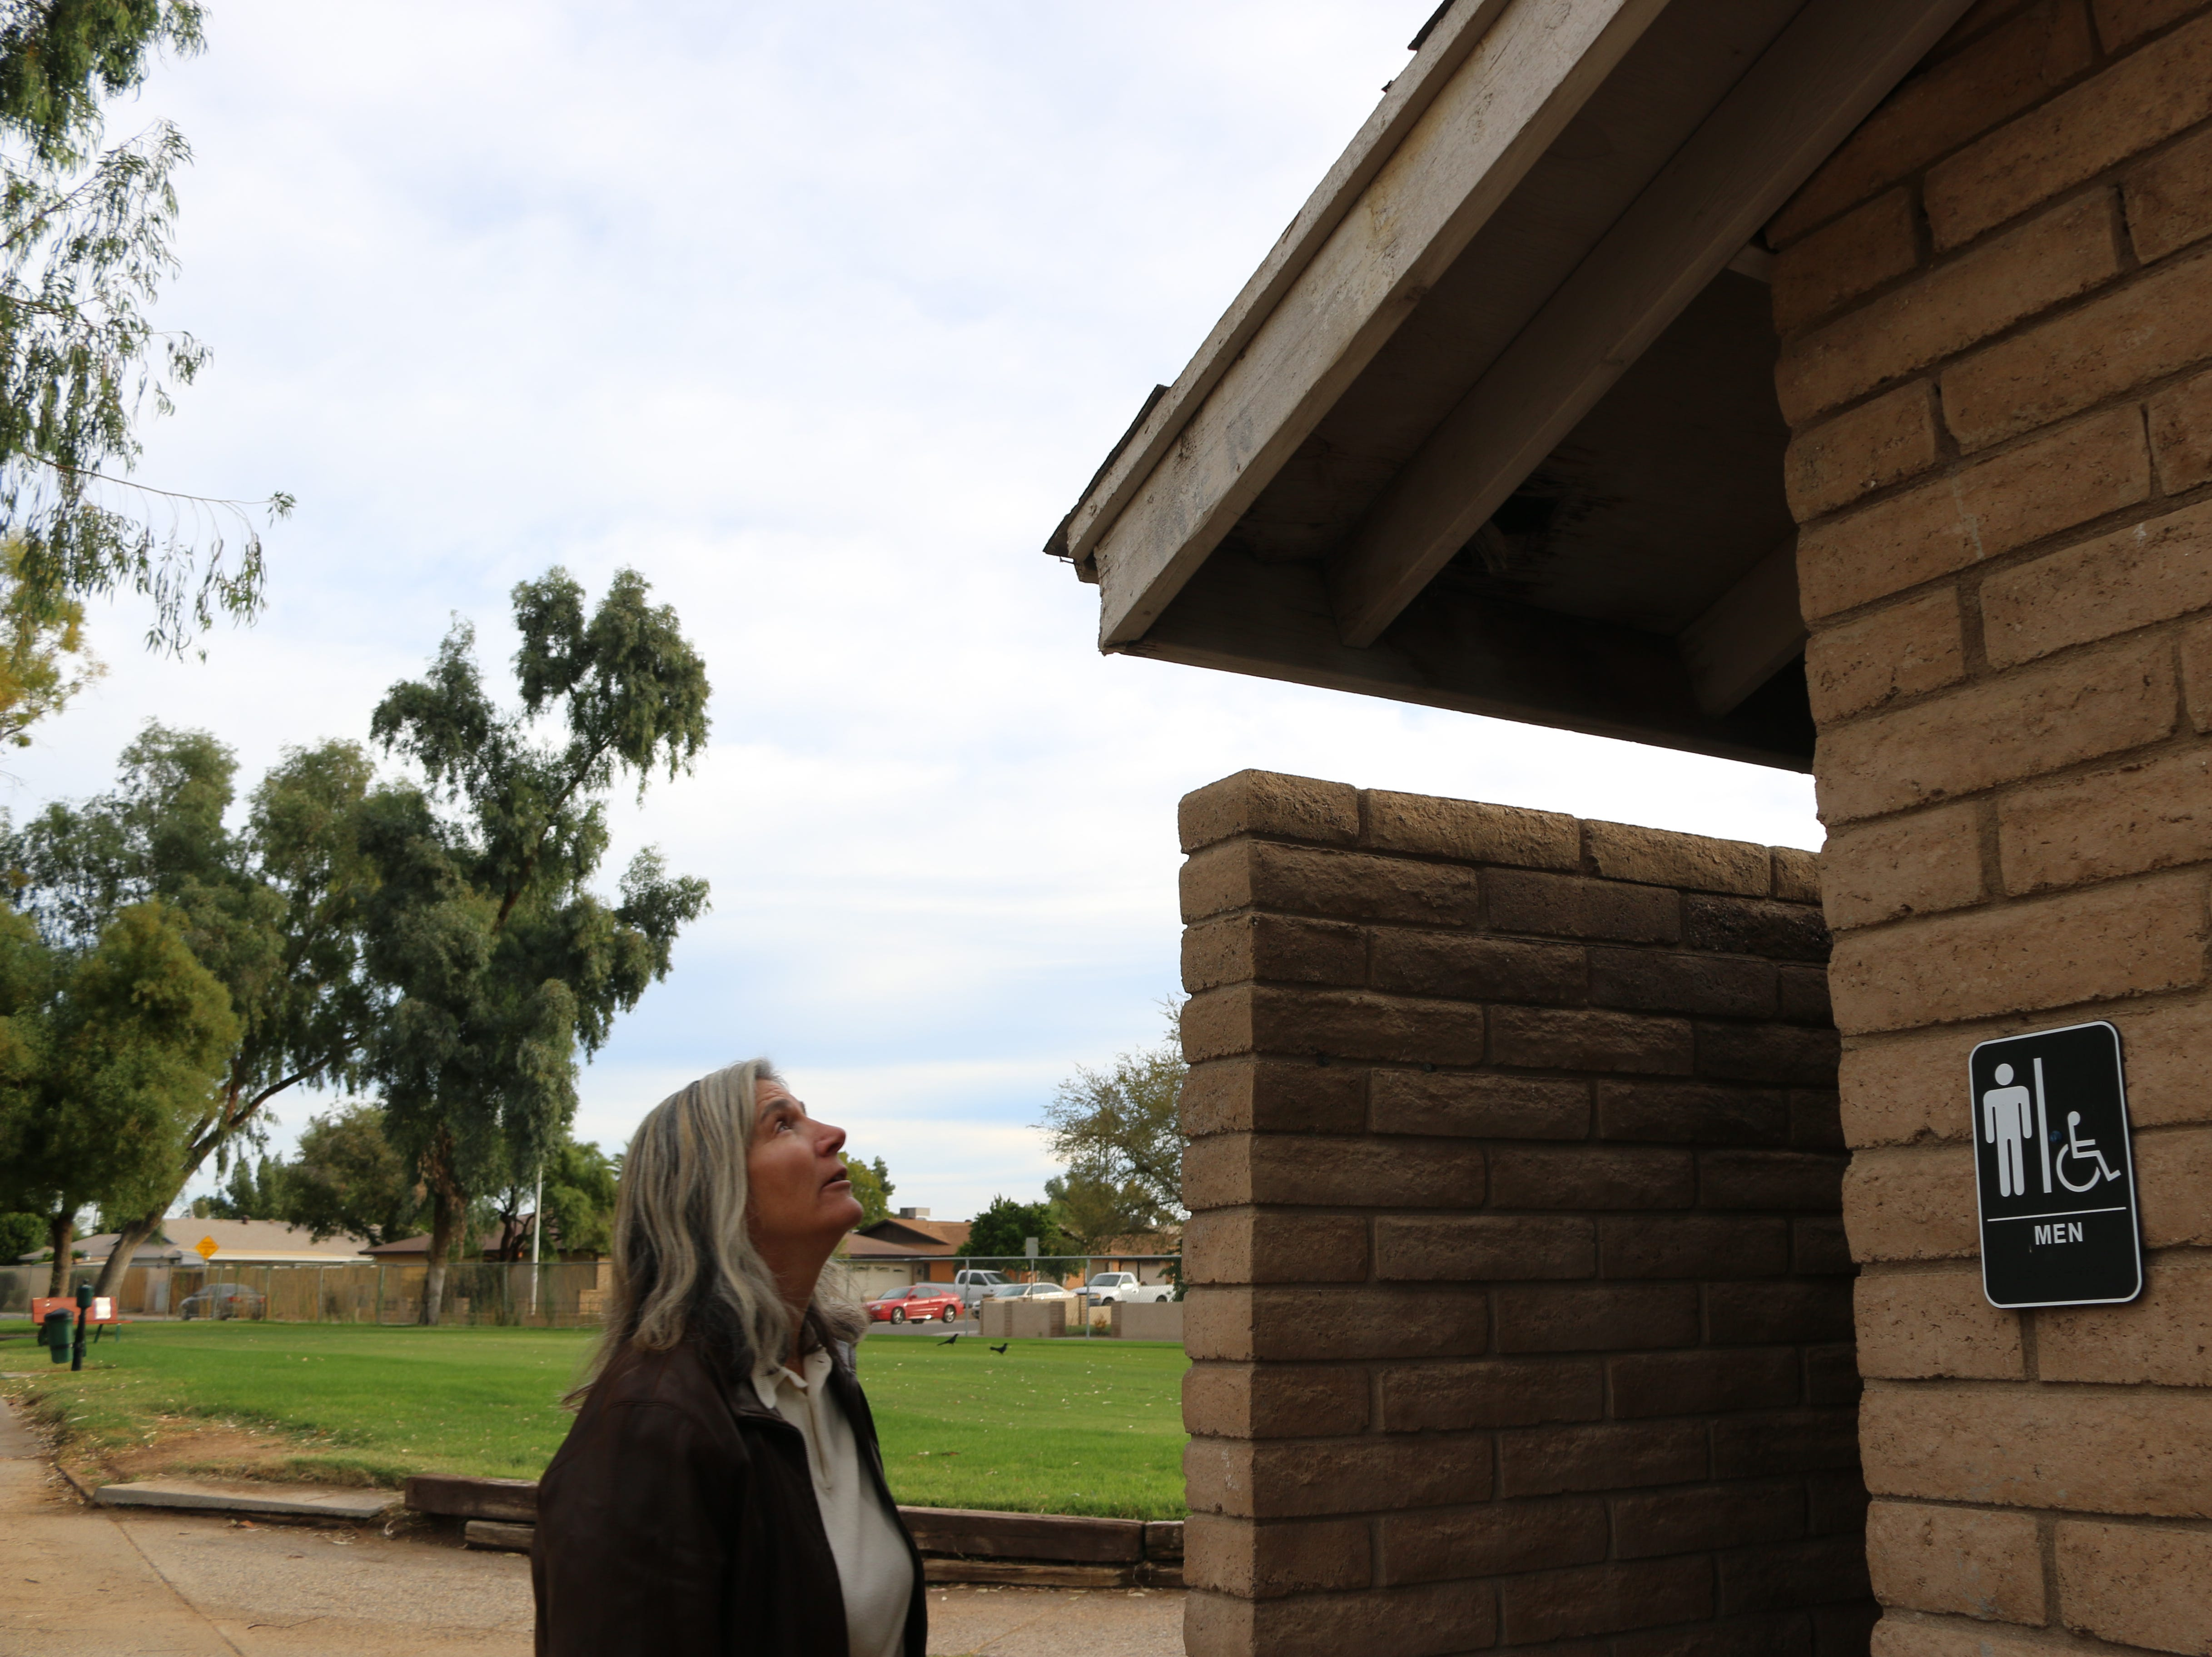 Michelle Woytenko, Glendale's field operations director, points out issues at the bathrooms at Glen Lakes Golf Course.